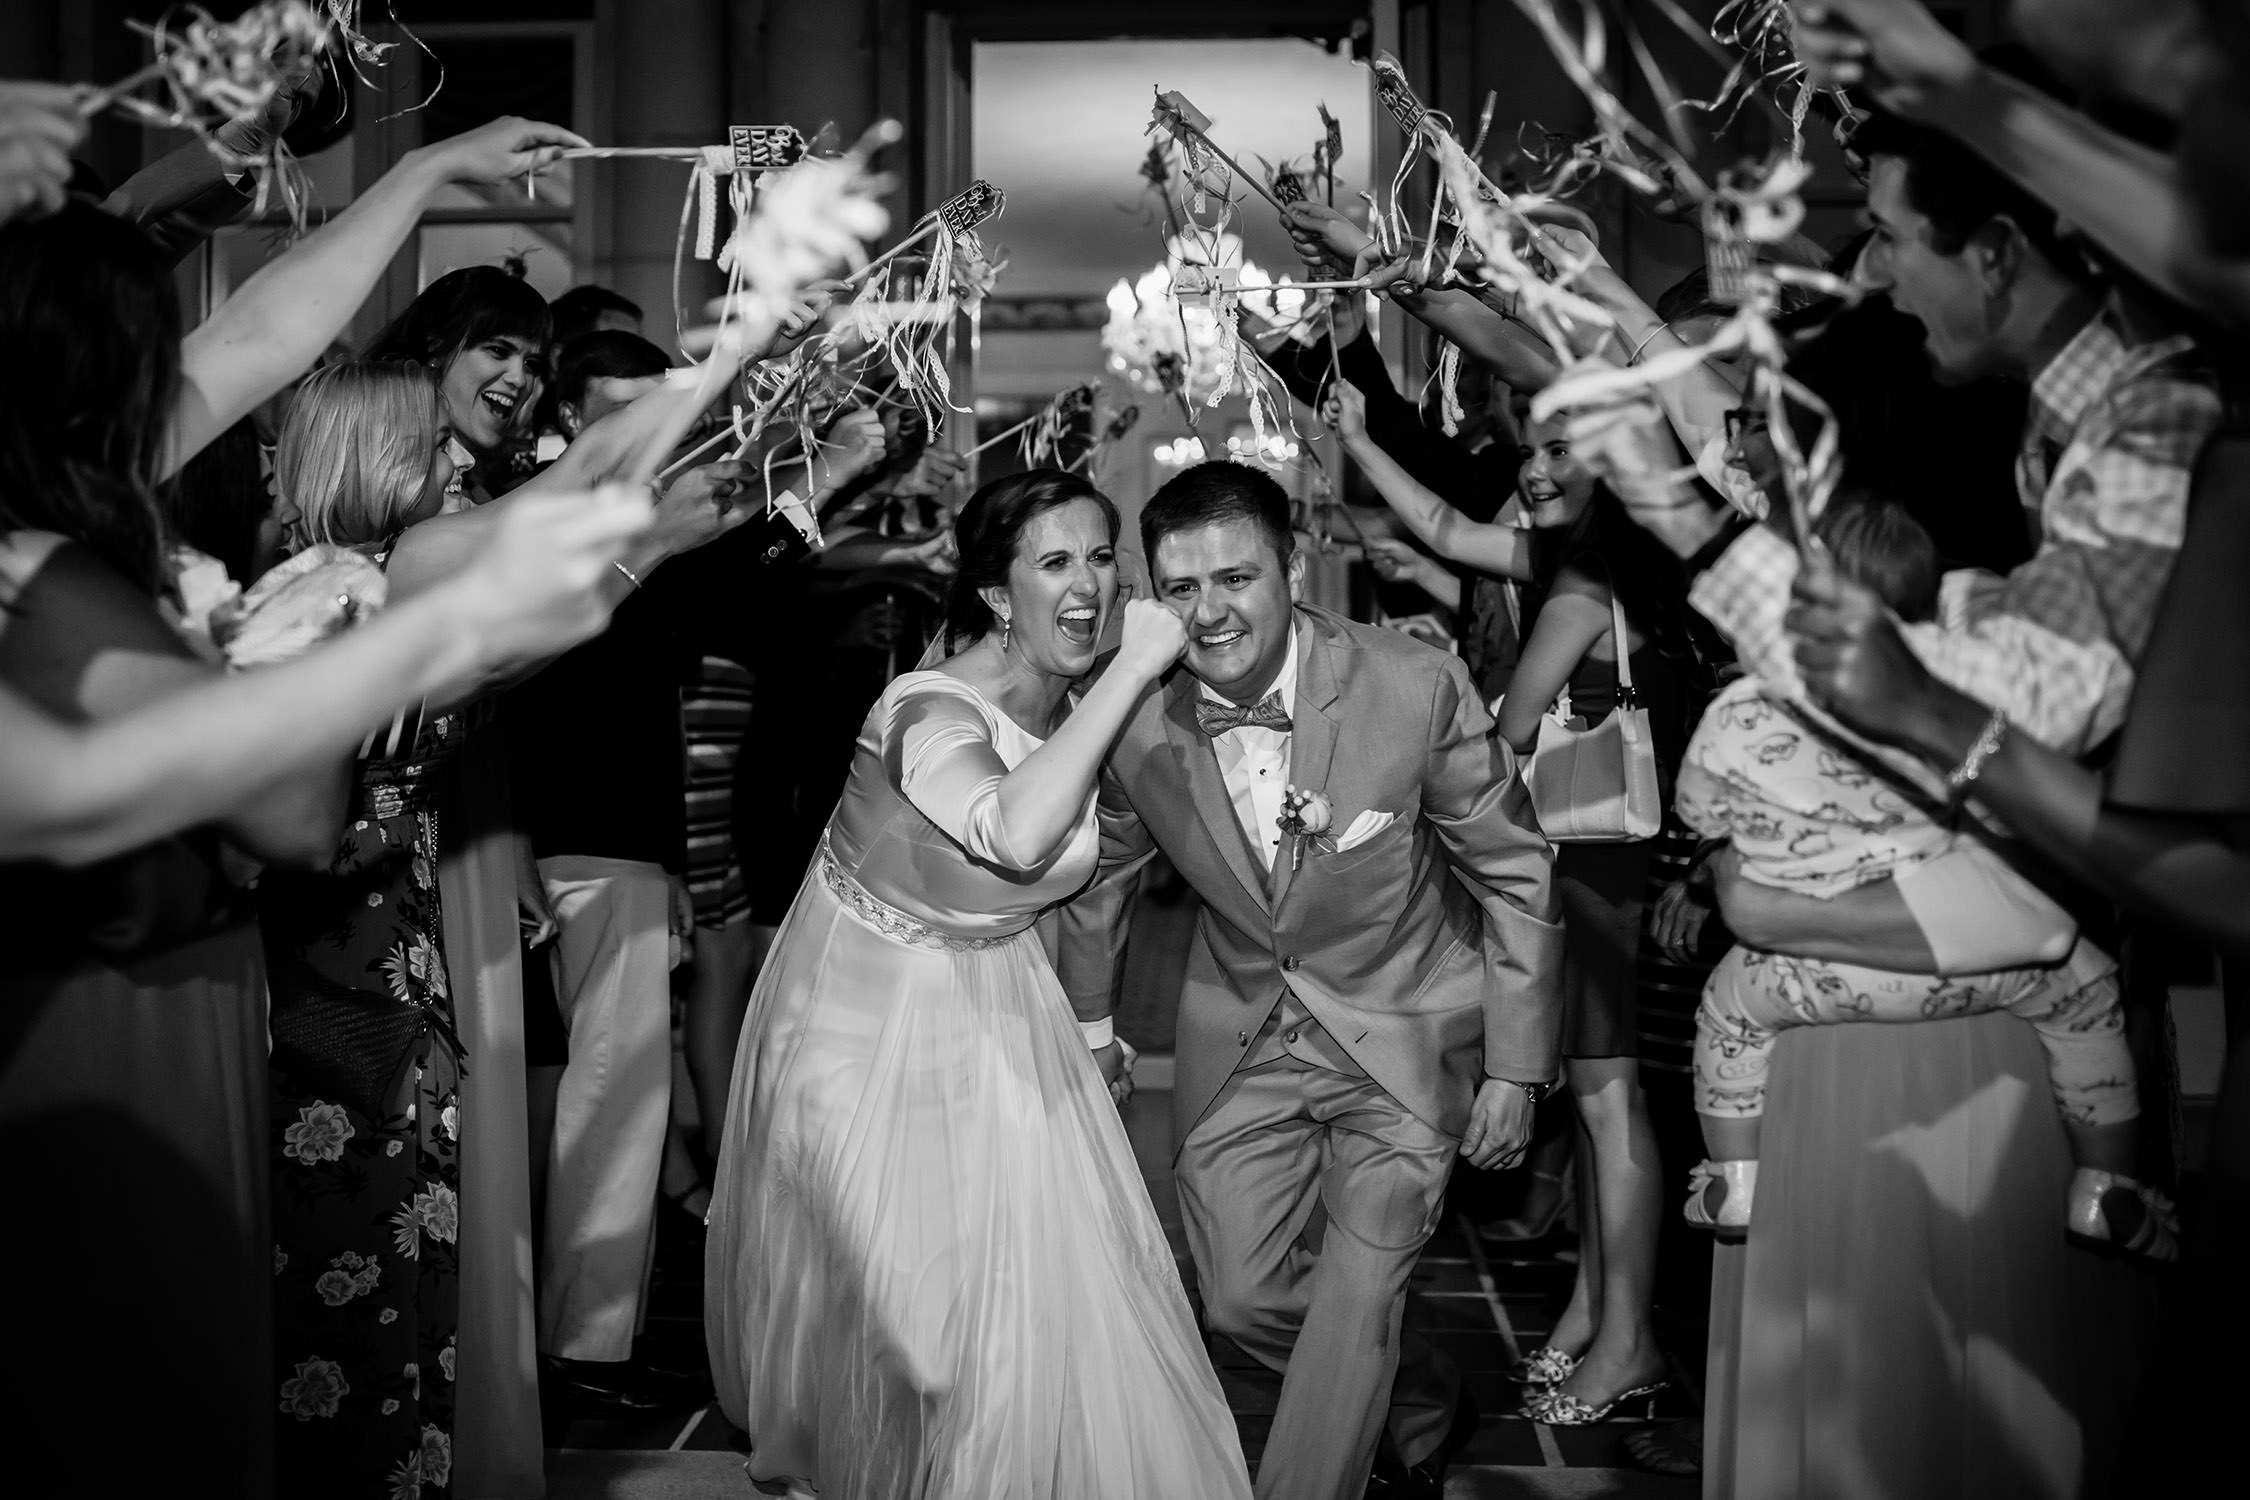 WPPI Award Winning photojournalism photo from Bard Mansion Wedding in Port Hueneme in Oxnard, California